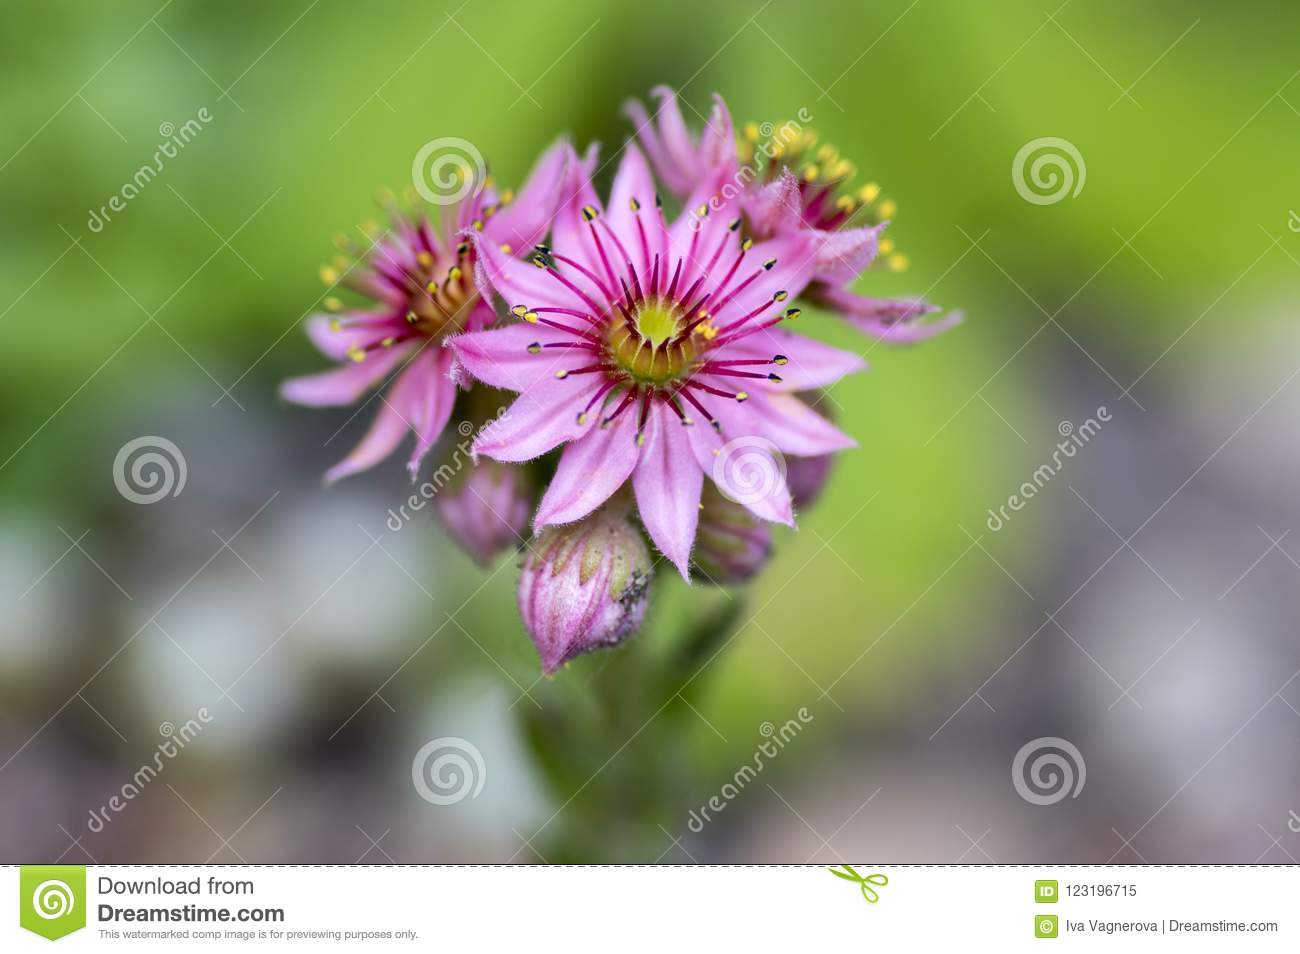 Sempervivum arachnoideum perennial flowering plant bright pink download sempervivum arachnoideum perennial flowering plant bright pink flowers stock image image of closeup mightylinksfo